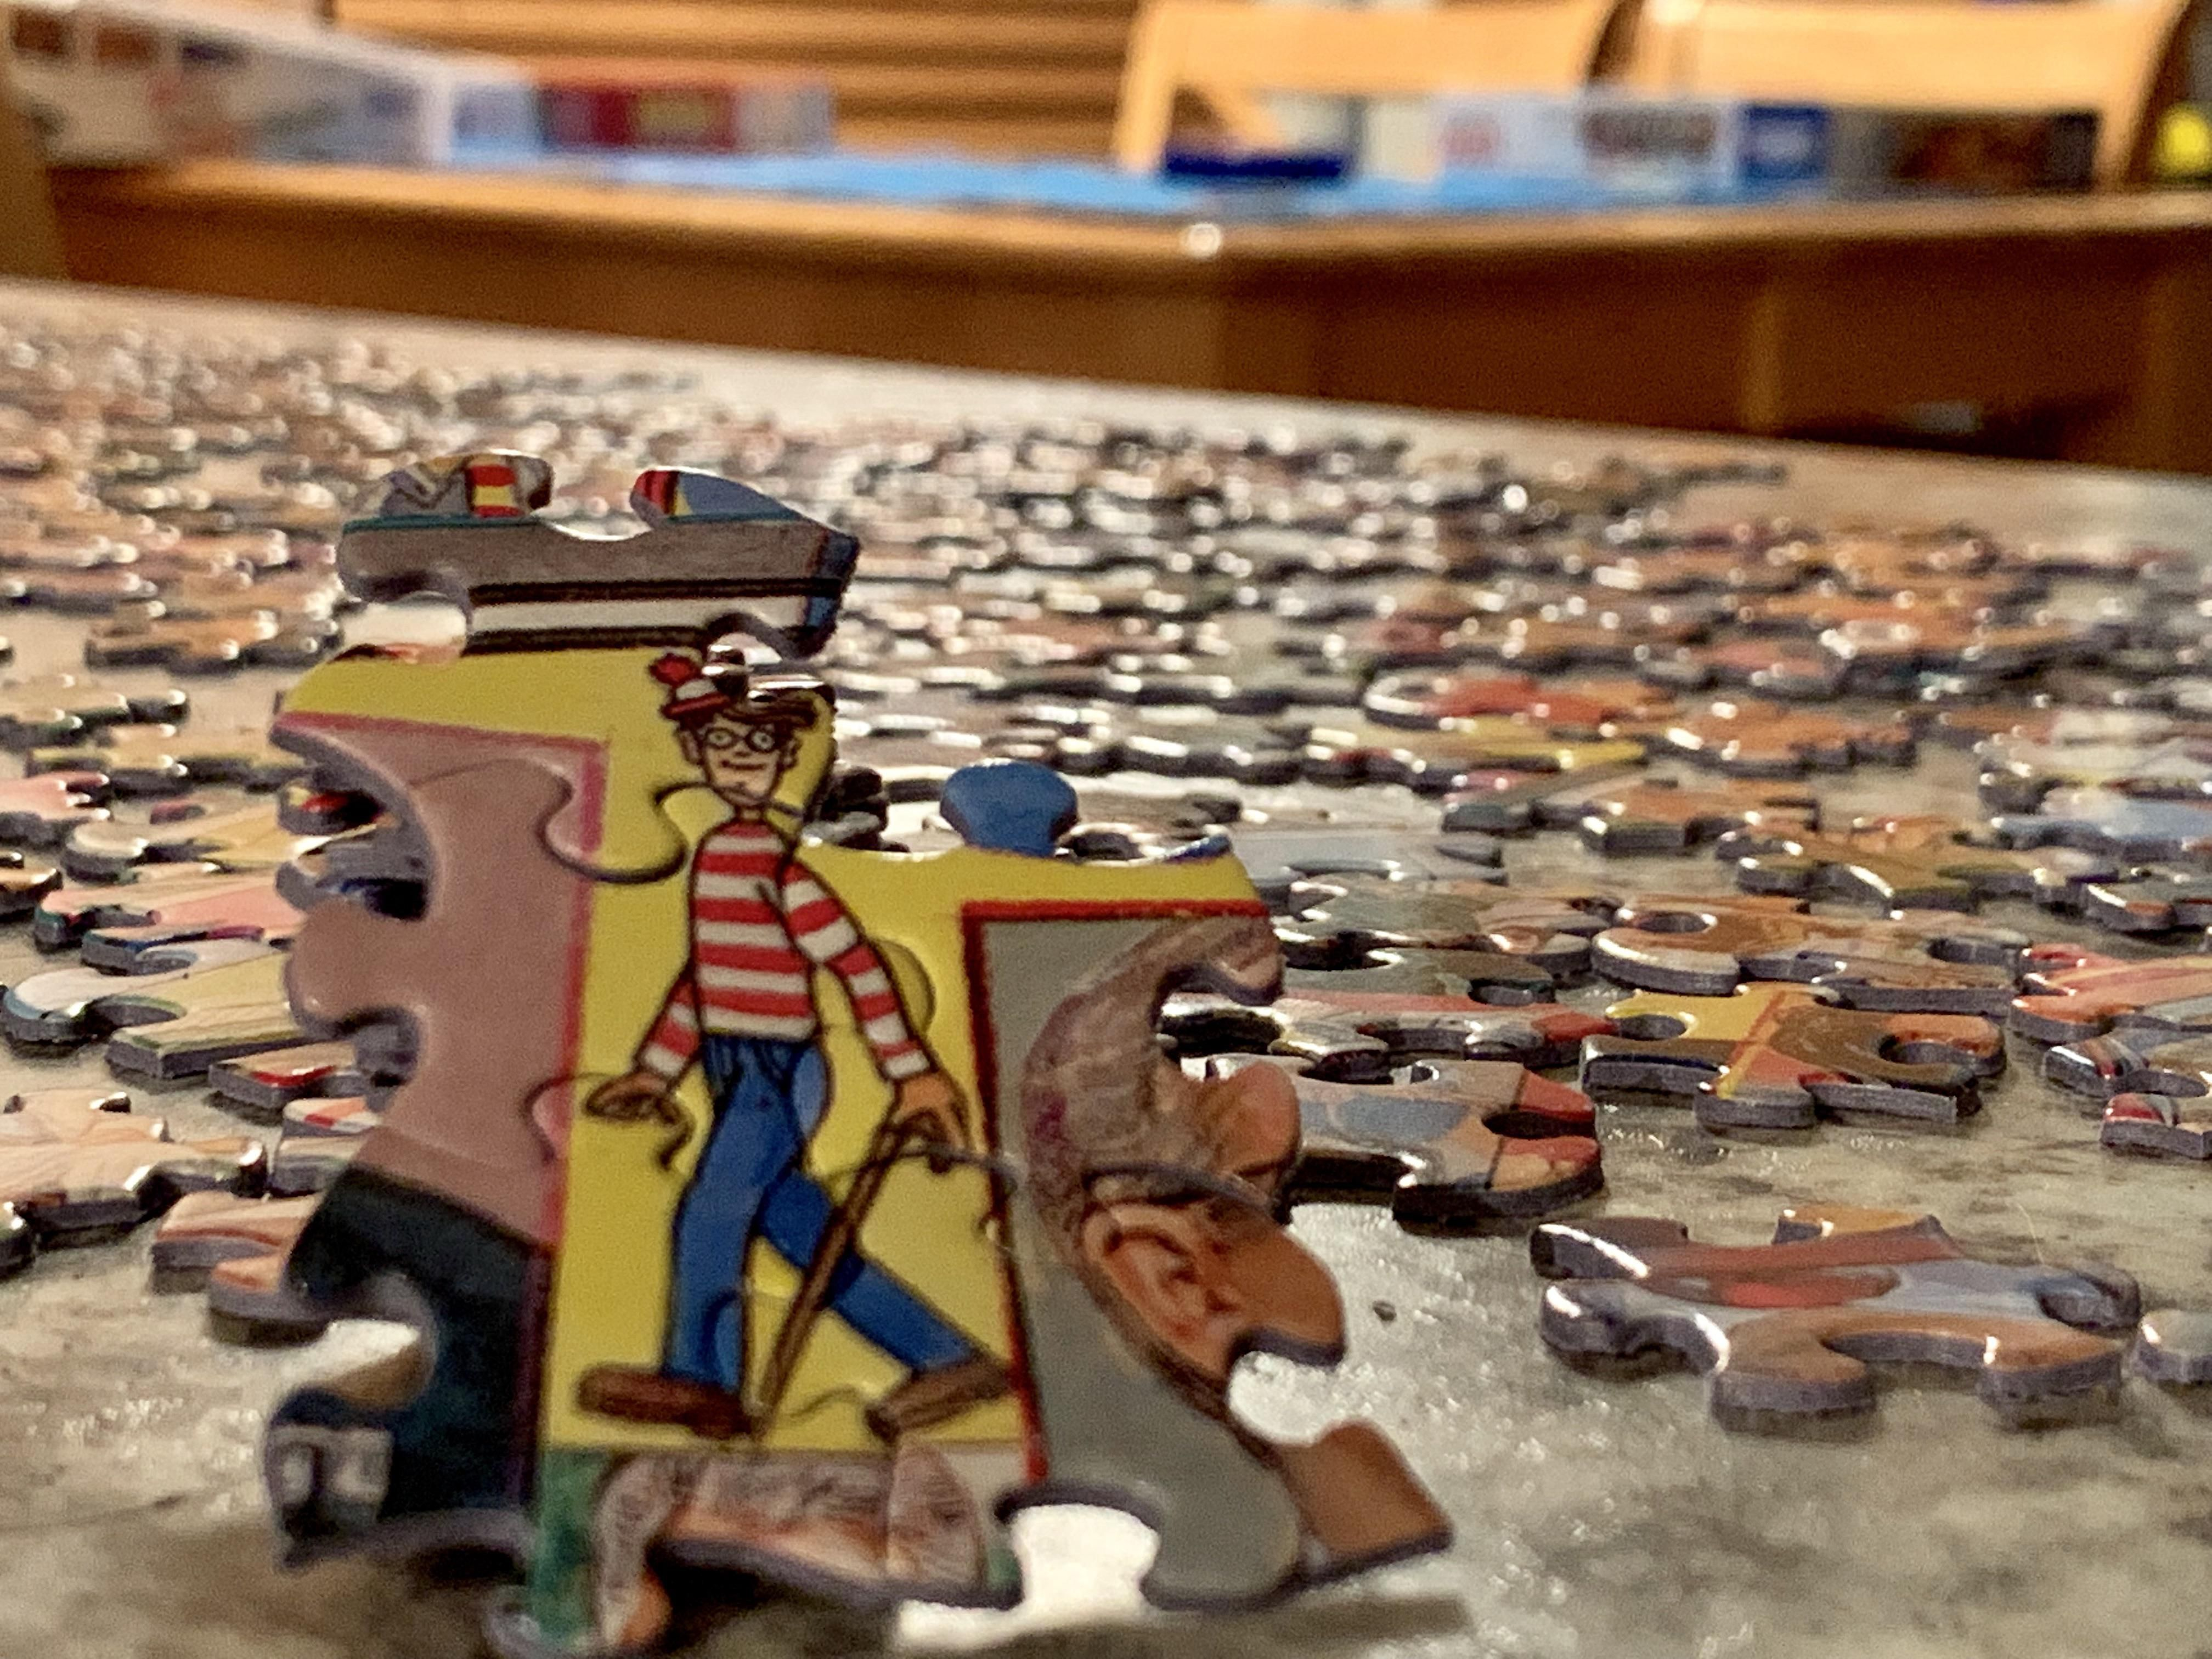 Working on a 1,000 piece puzzle...and guess whose dumbass was easy to find.